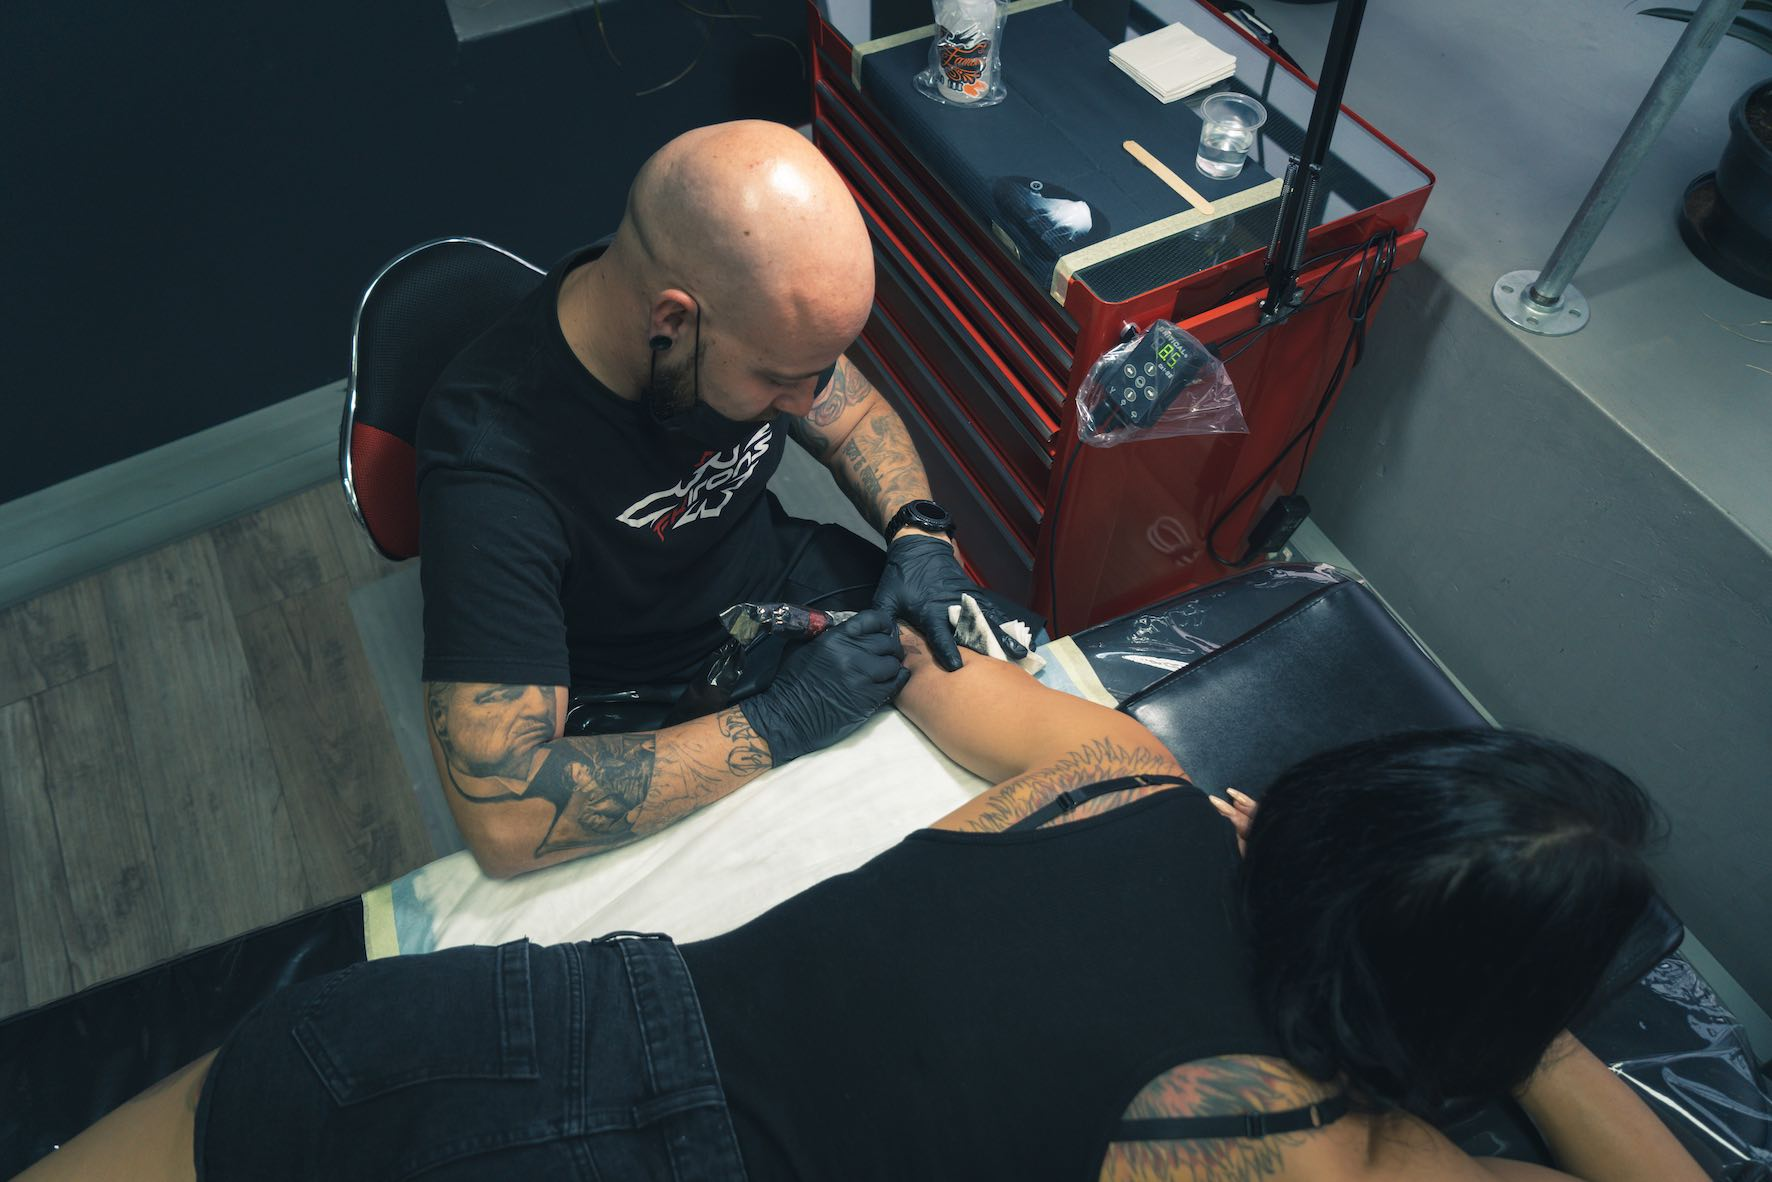 Tony Barcelos features as our Tattoo Artist of the Week